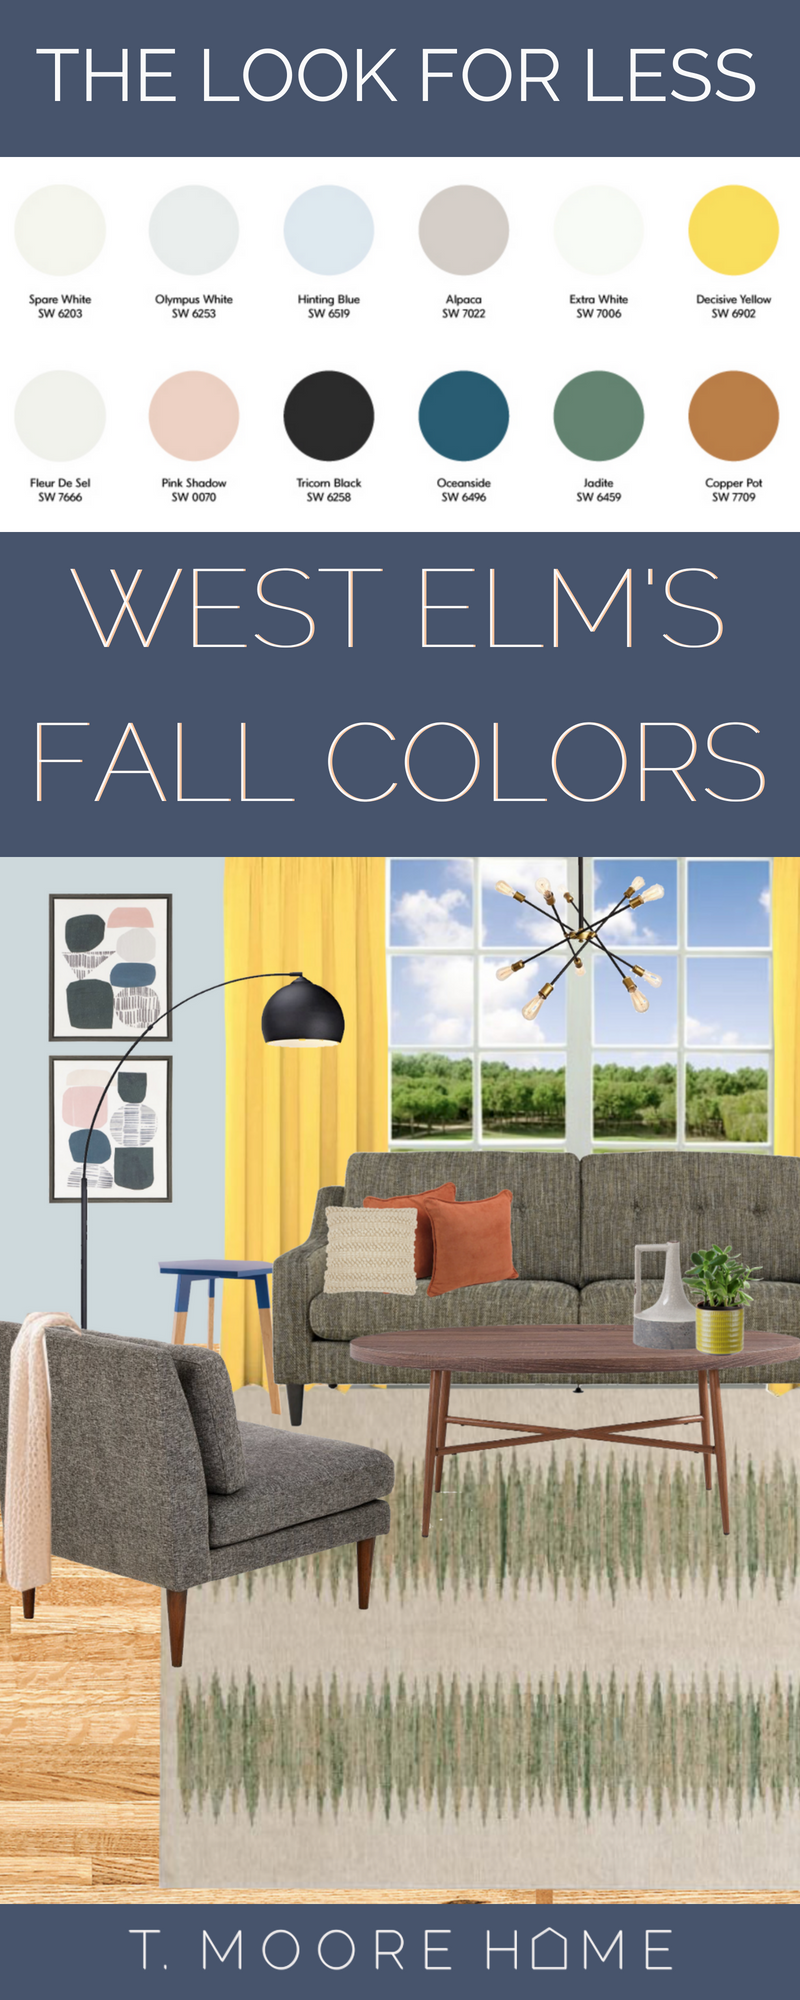 west elm inspired room for fall